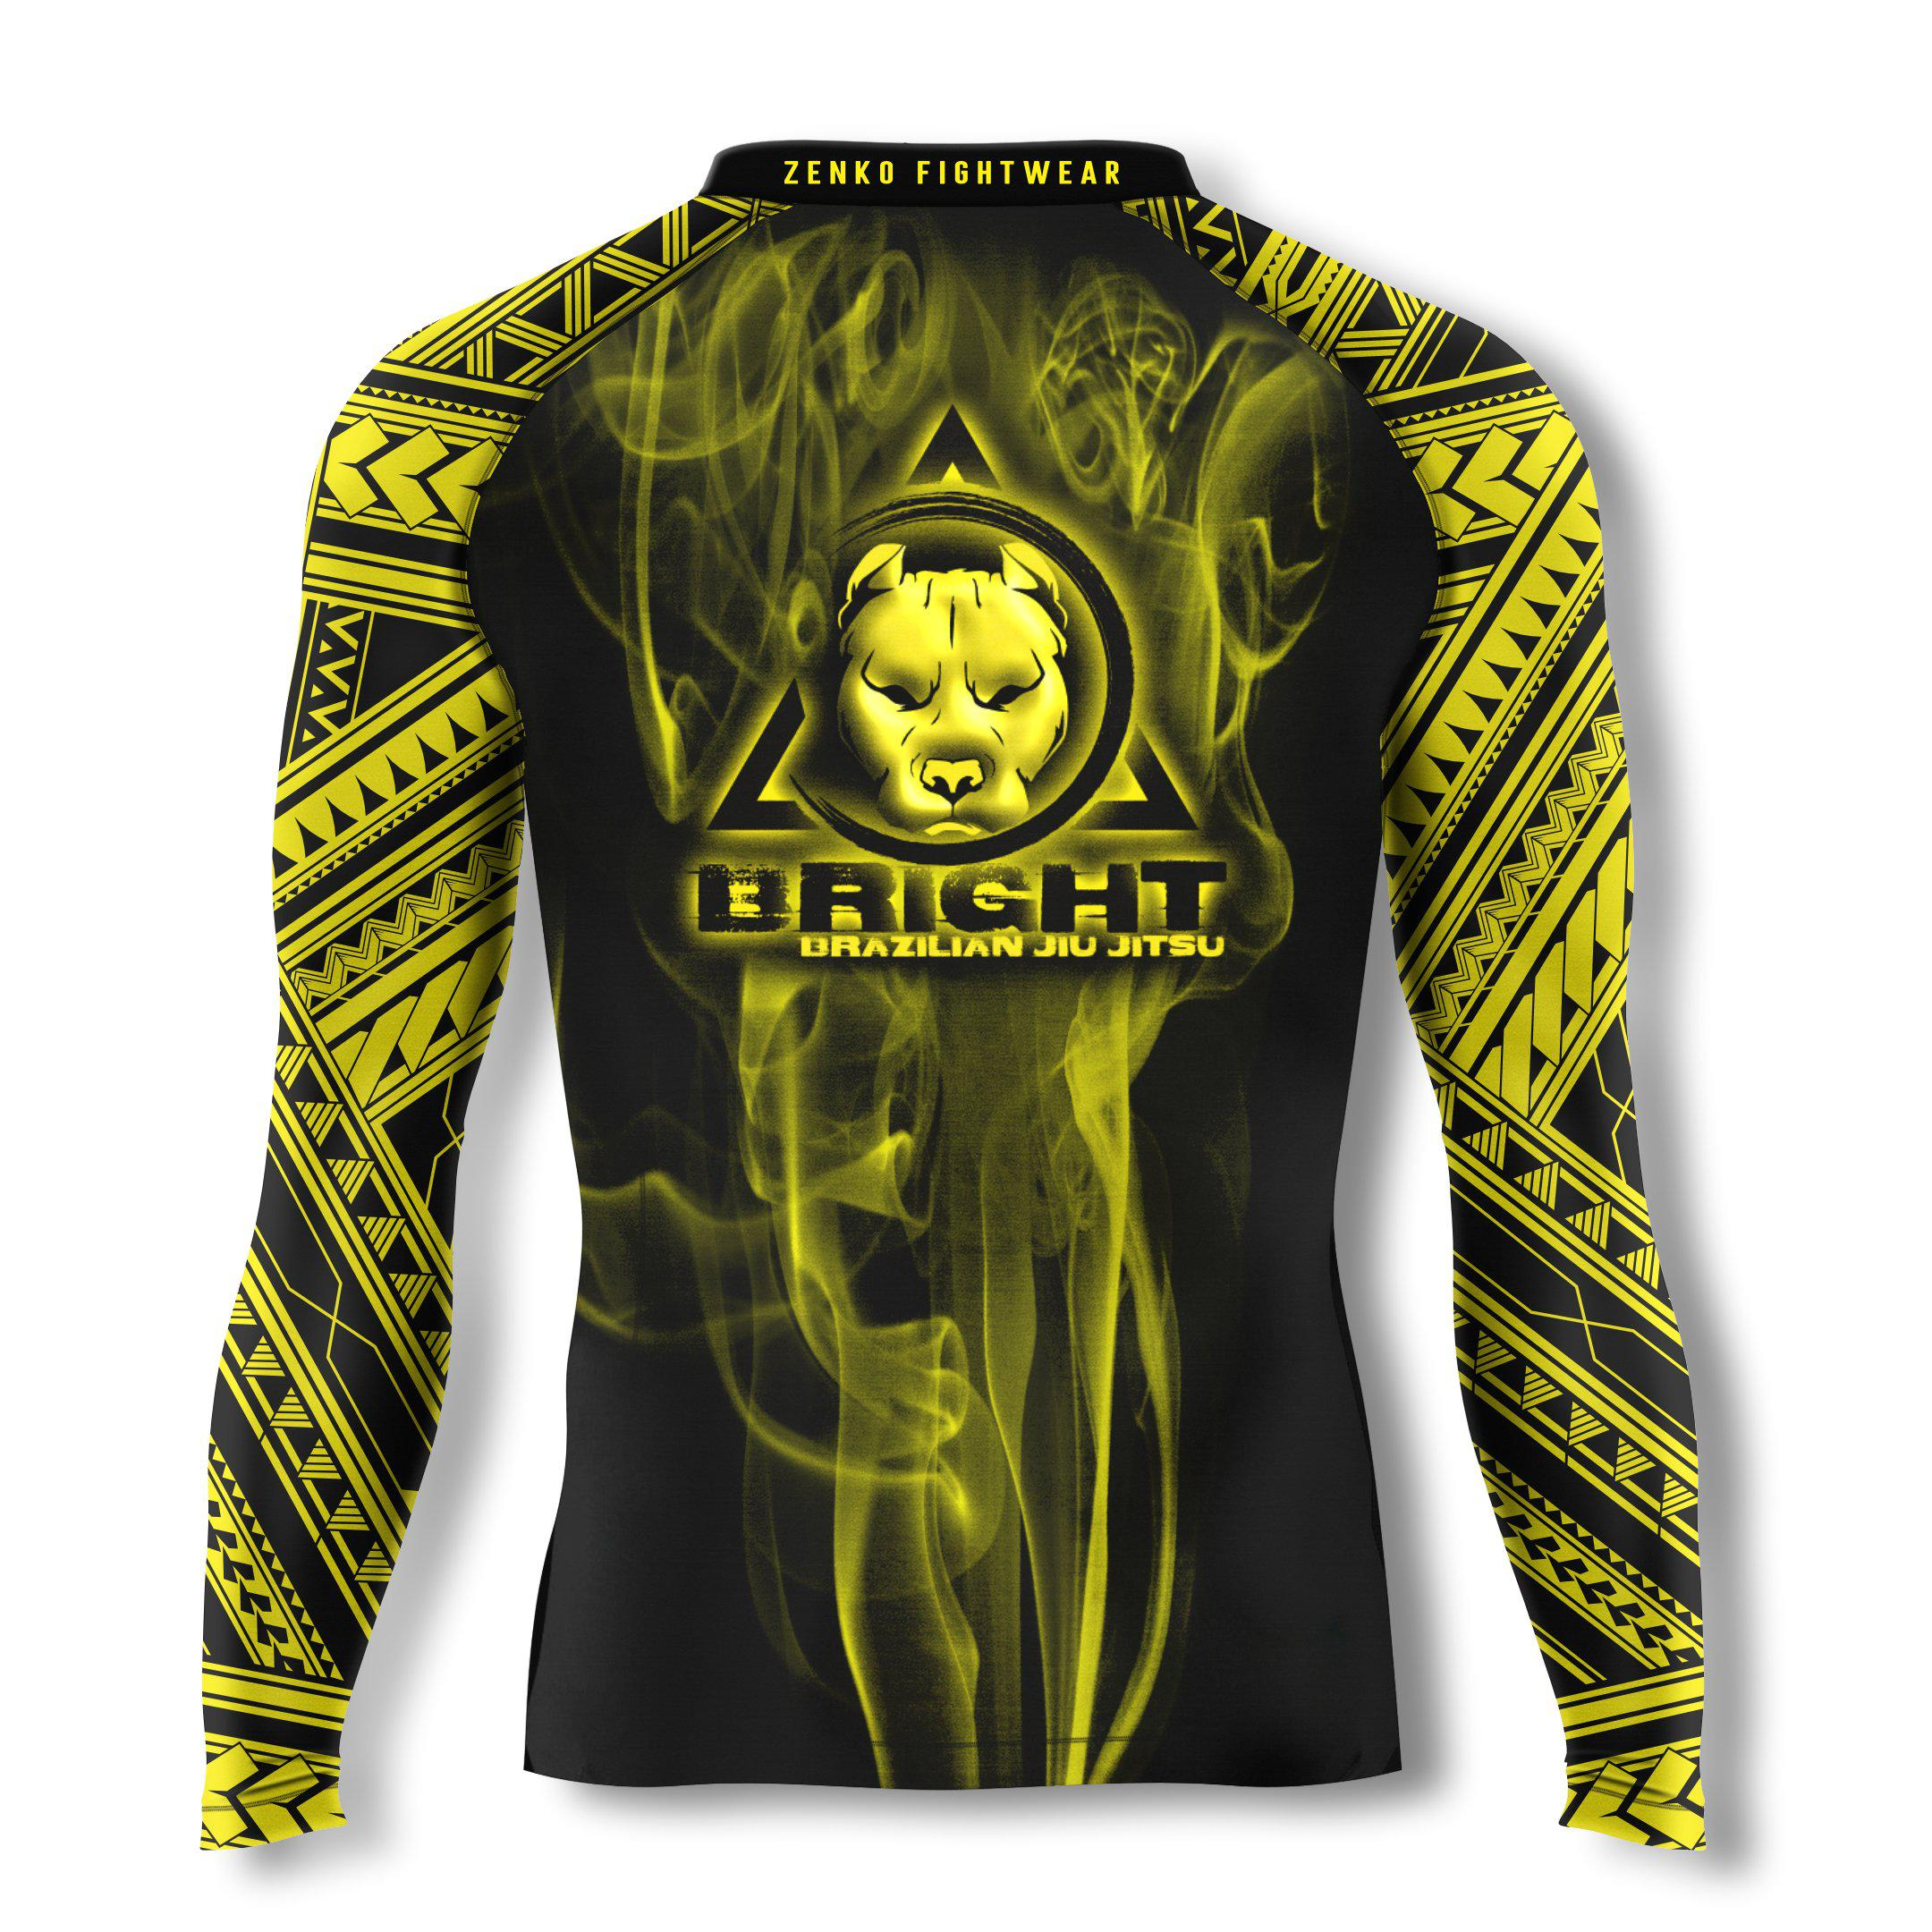 Bright Brazilian Jiu Jitsu Long Sleeve Rashguard - Zenko Fightwear